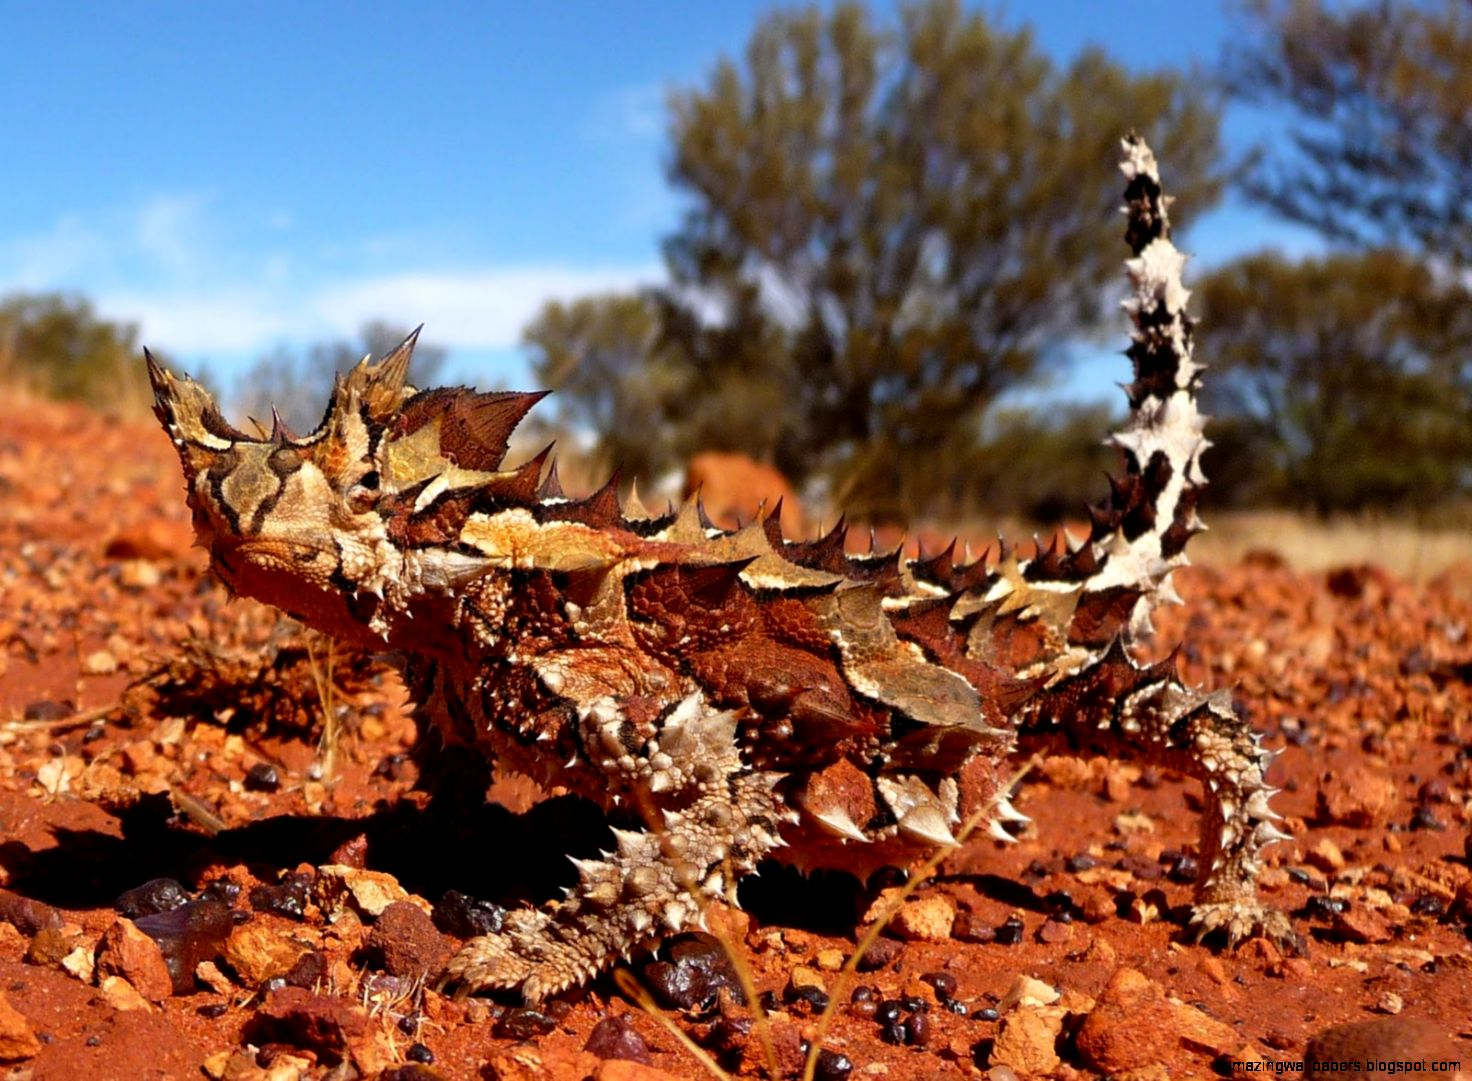 The Biomimicry Manual What Can a Thorny Devil Teach Us About